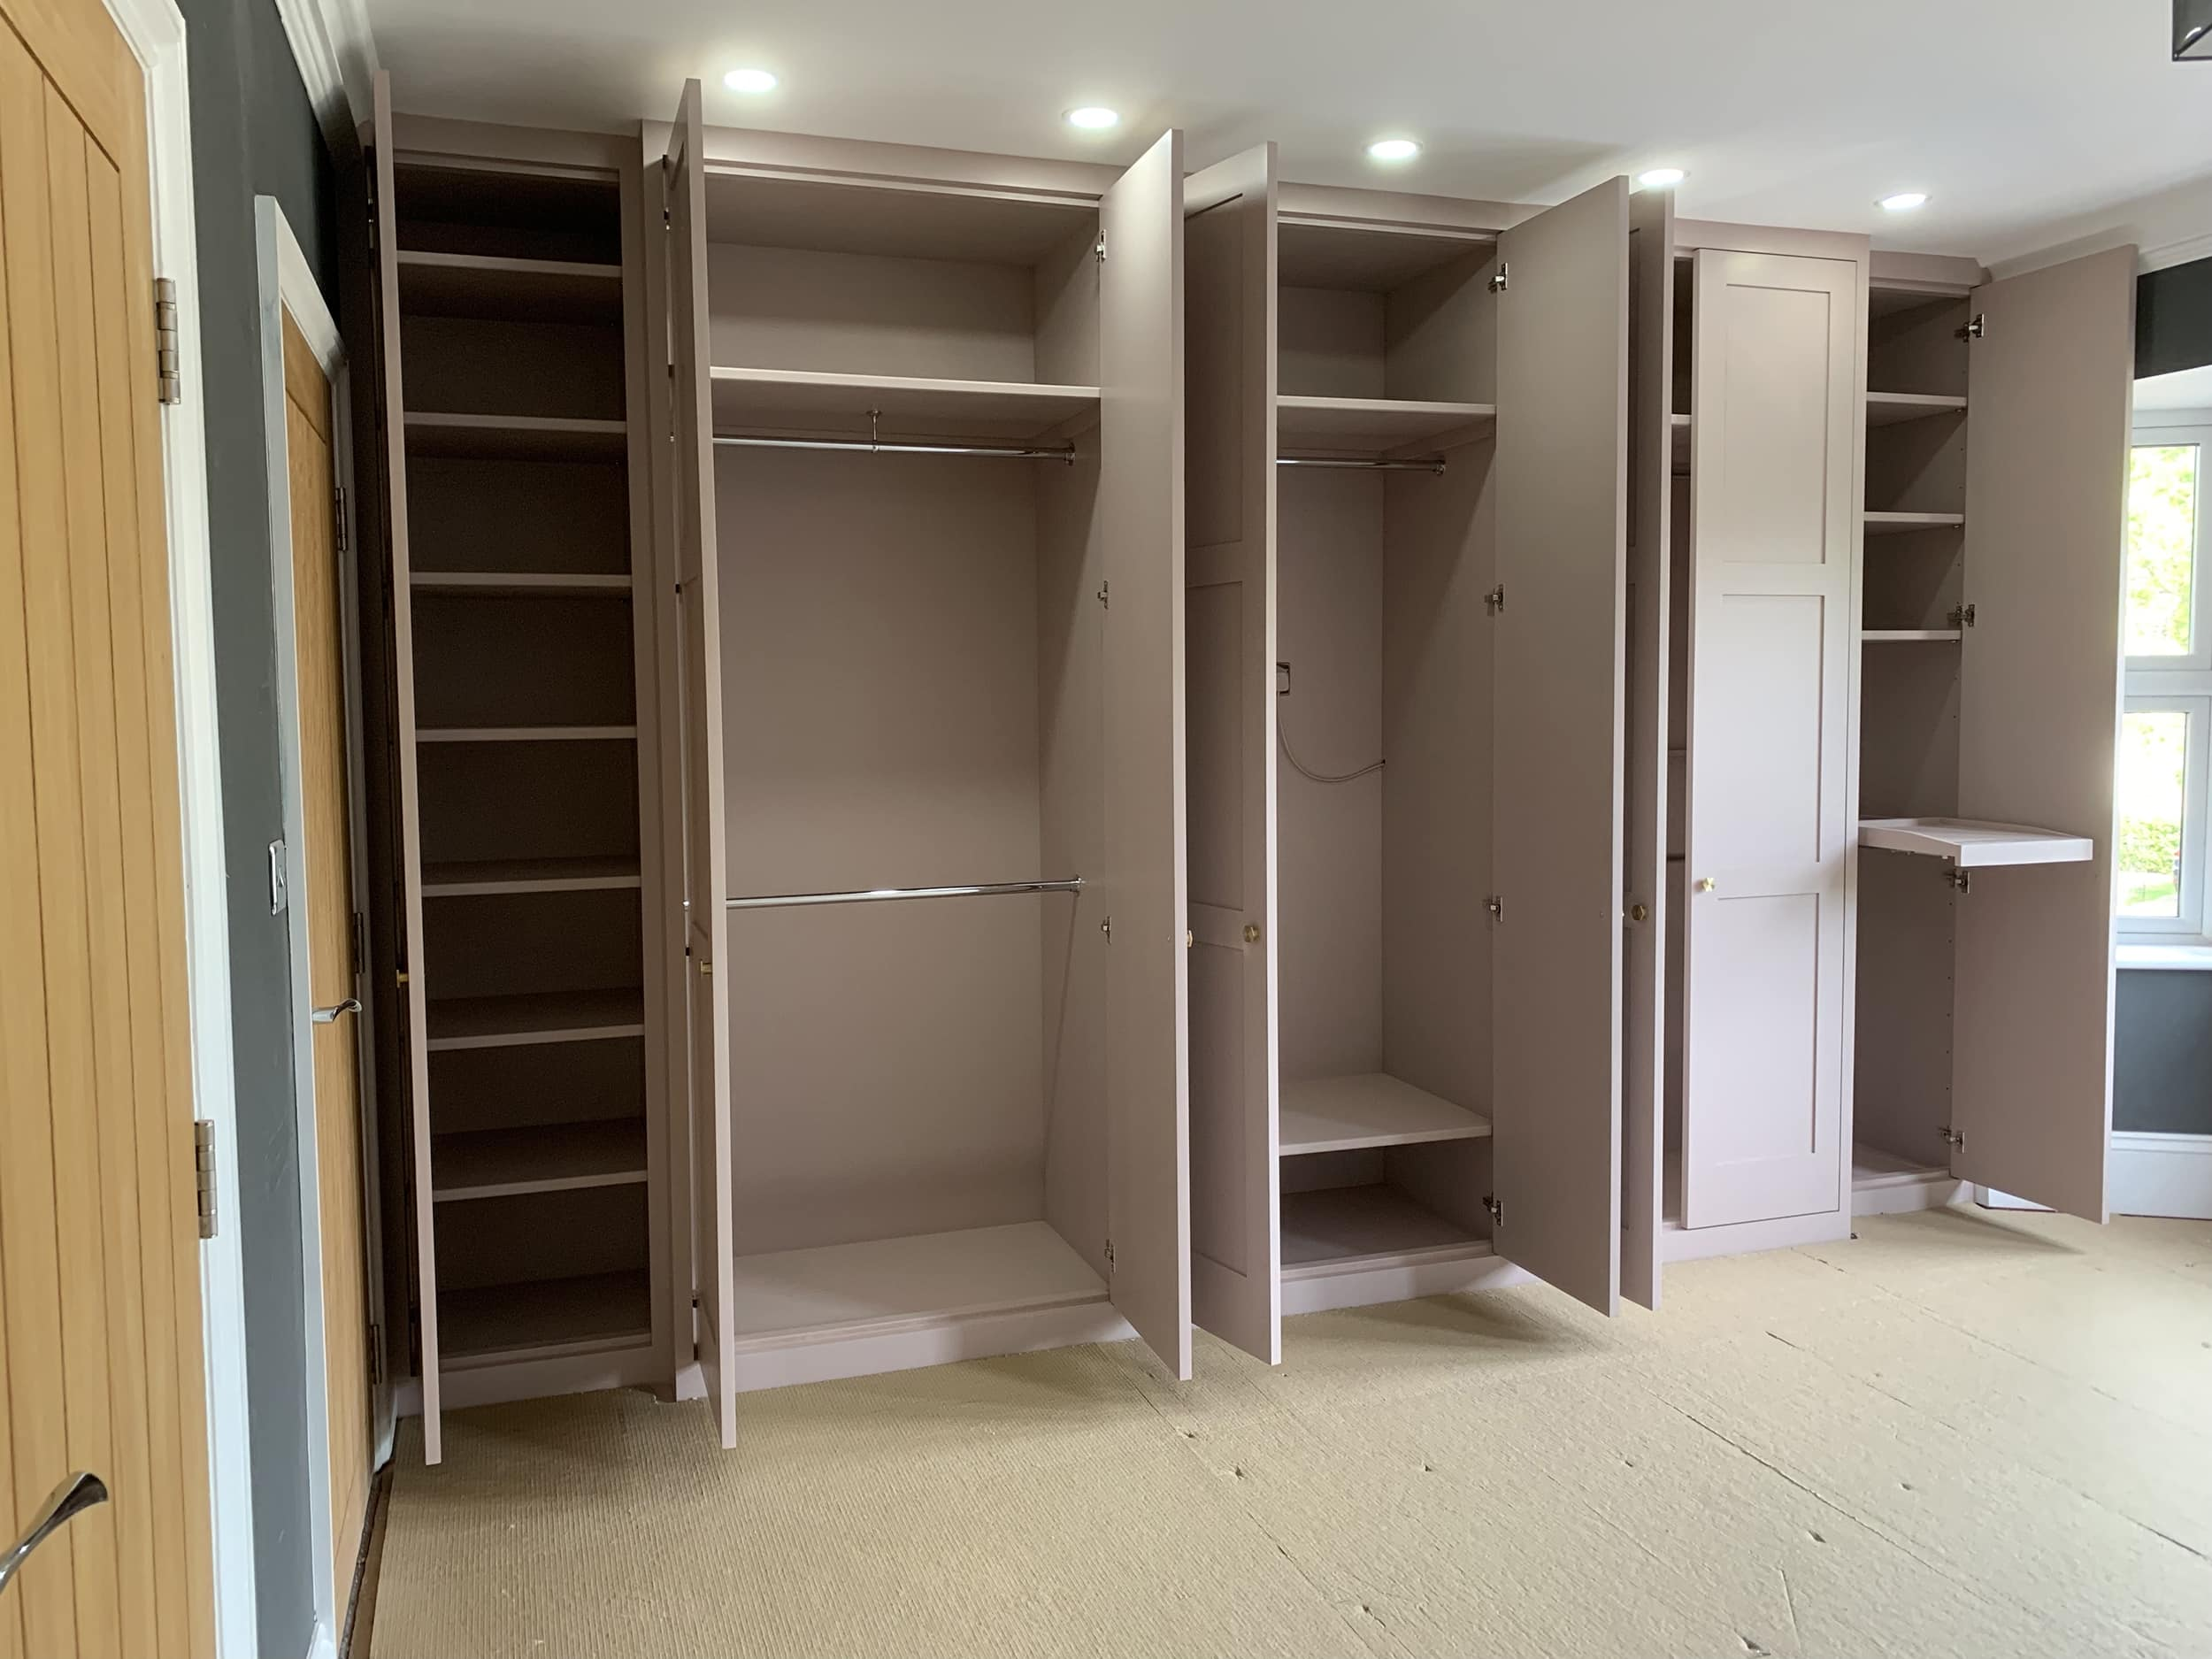 Wardrobe interior with shelves and hanging space.